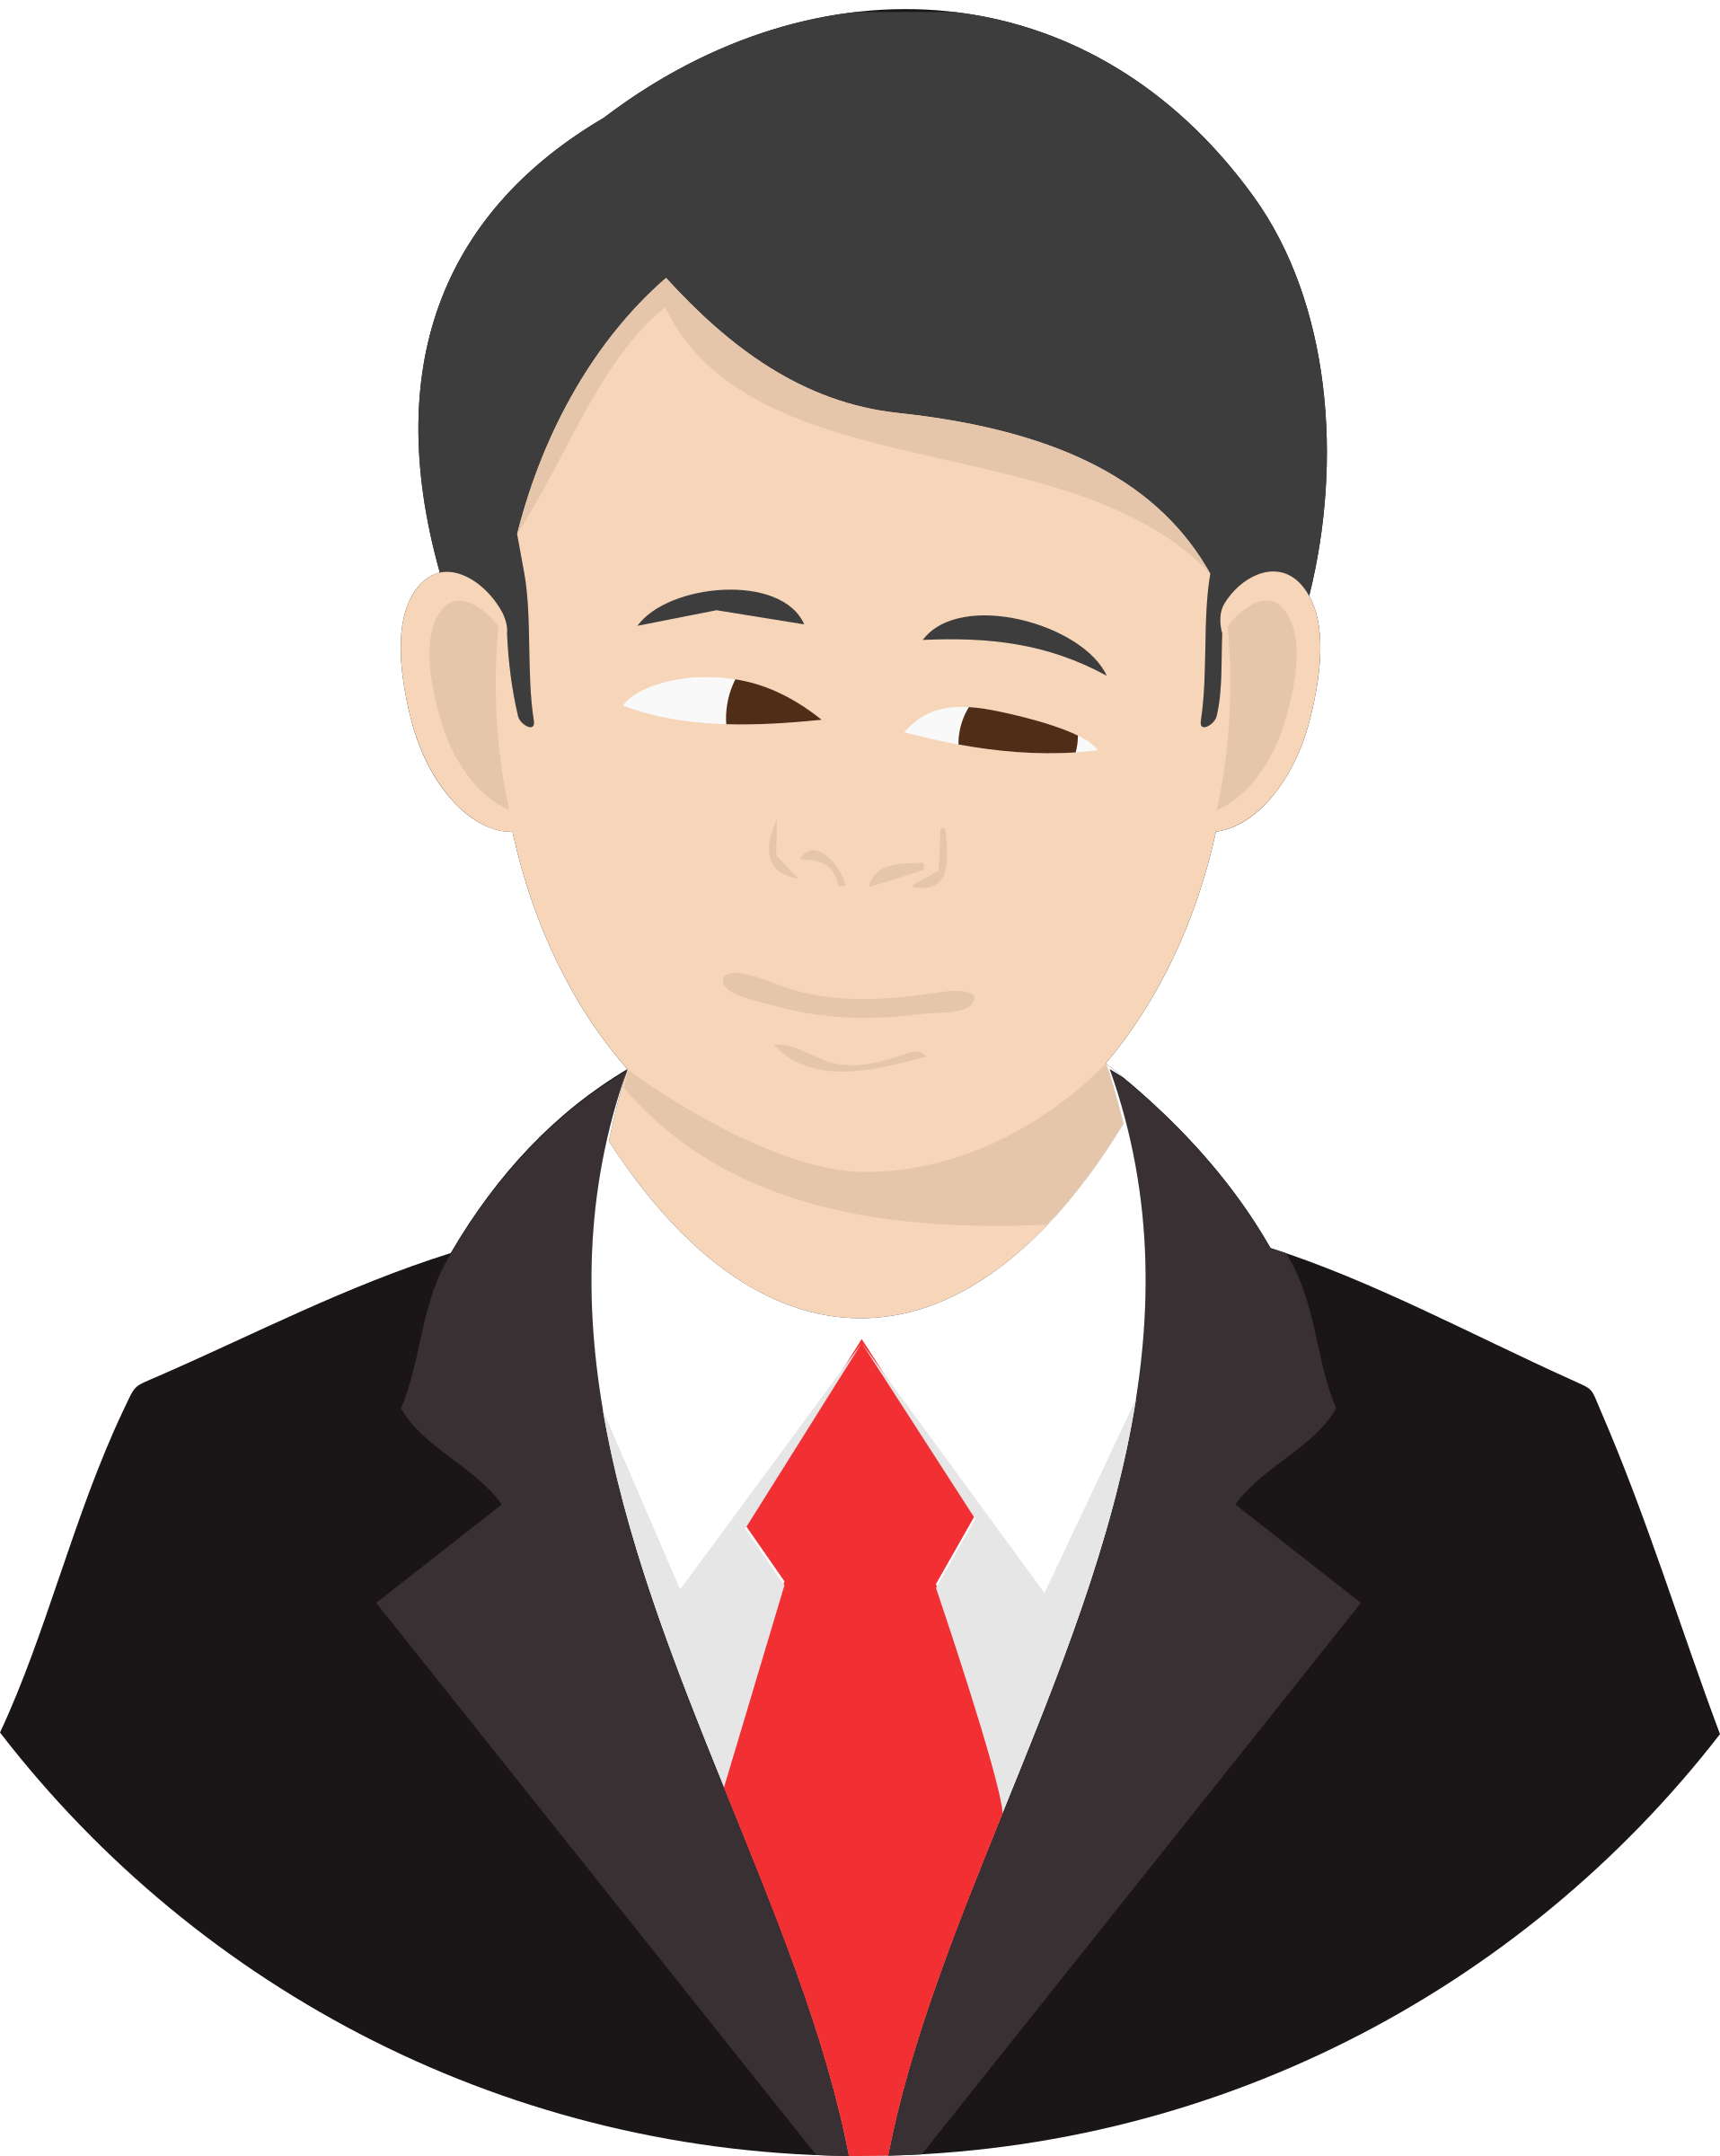 Face man big image. Faces clipart male character